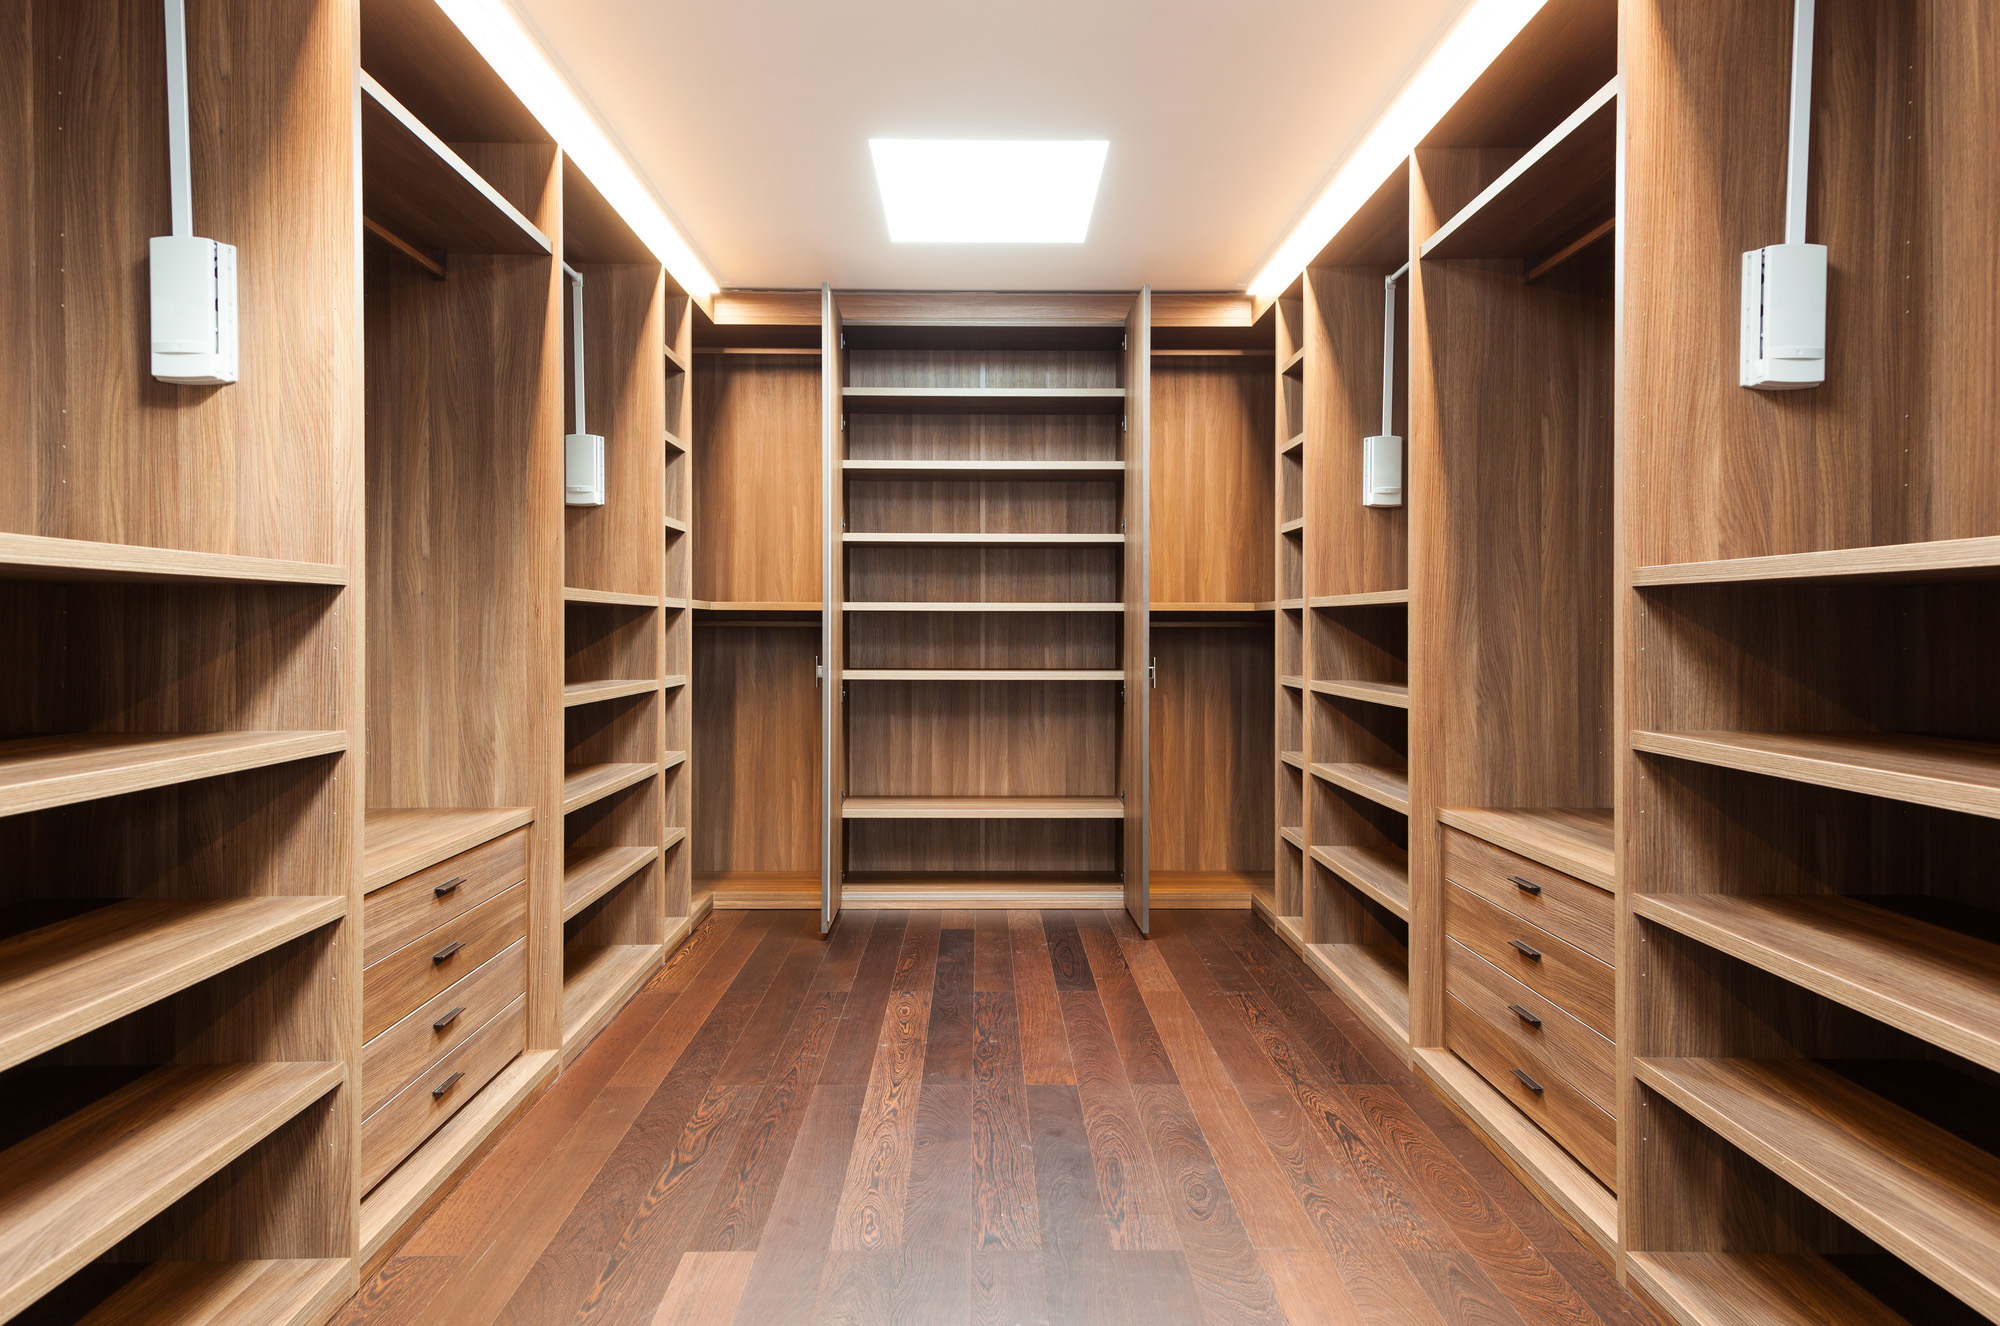 dressing room ideas, open wardrobe ideas, walk in wardrobe